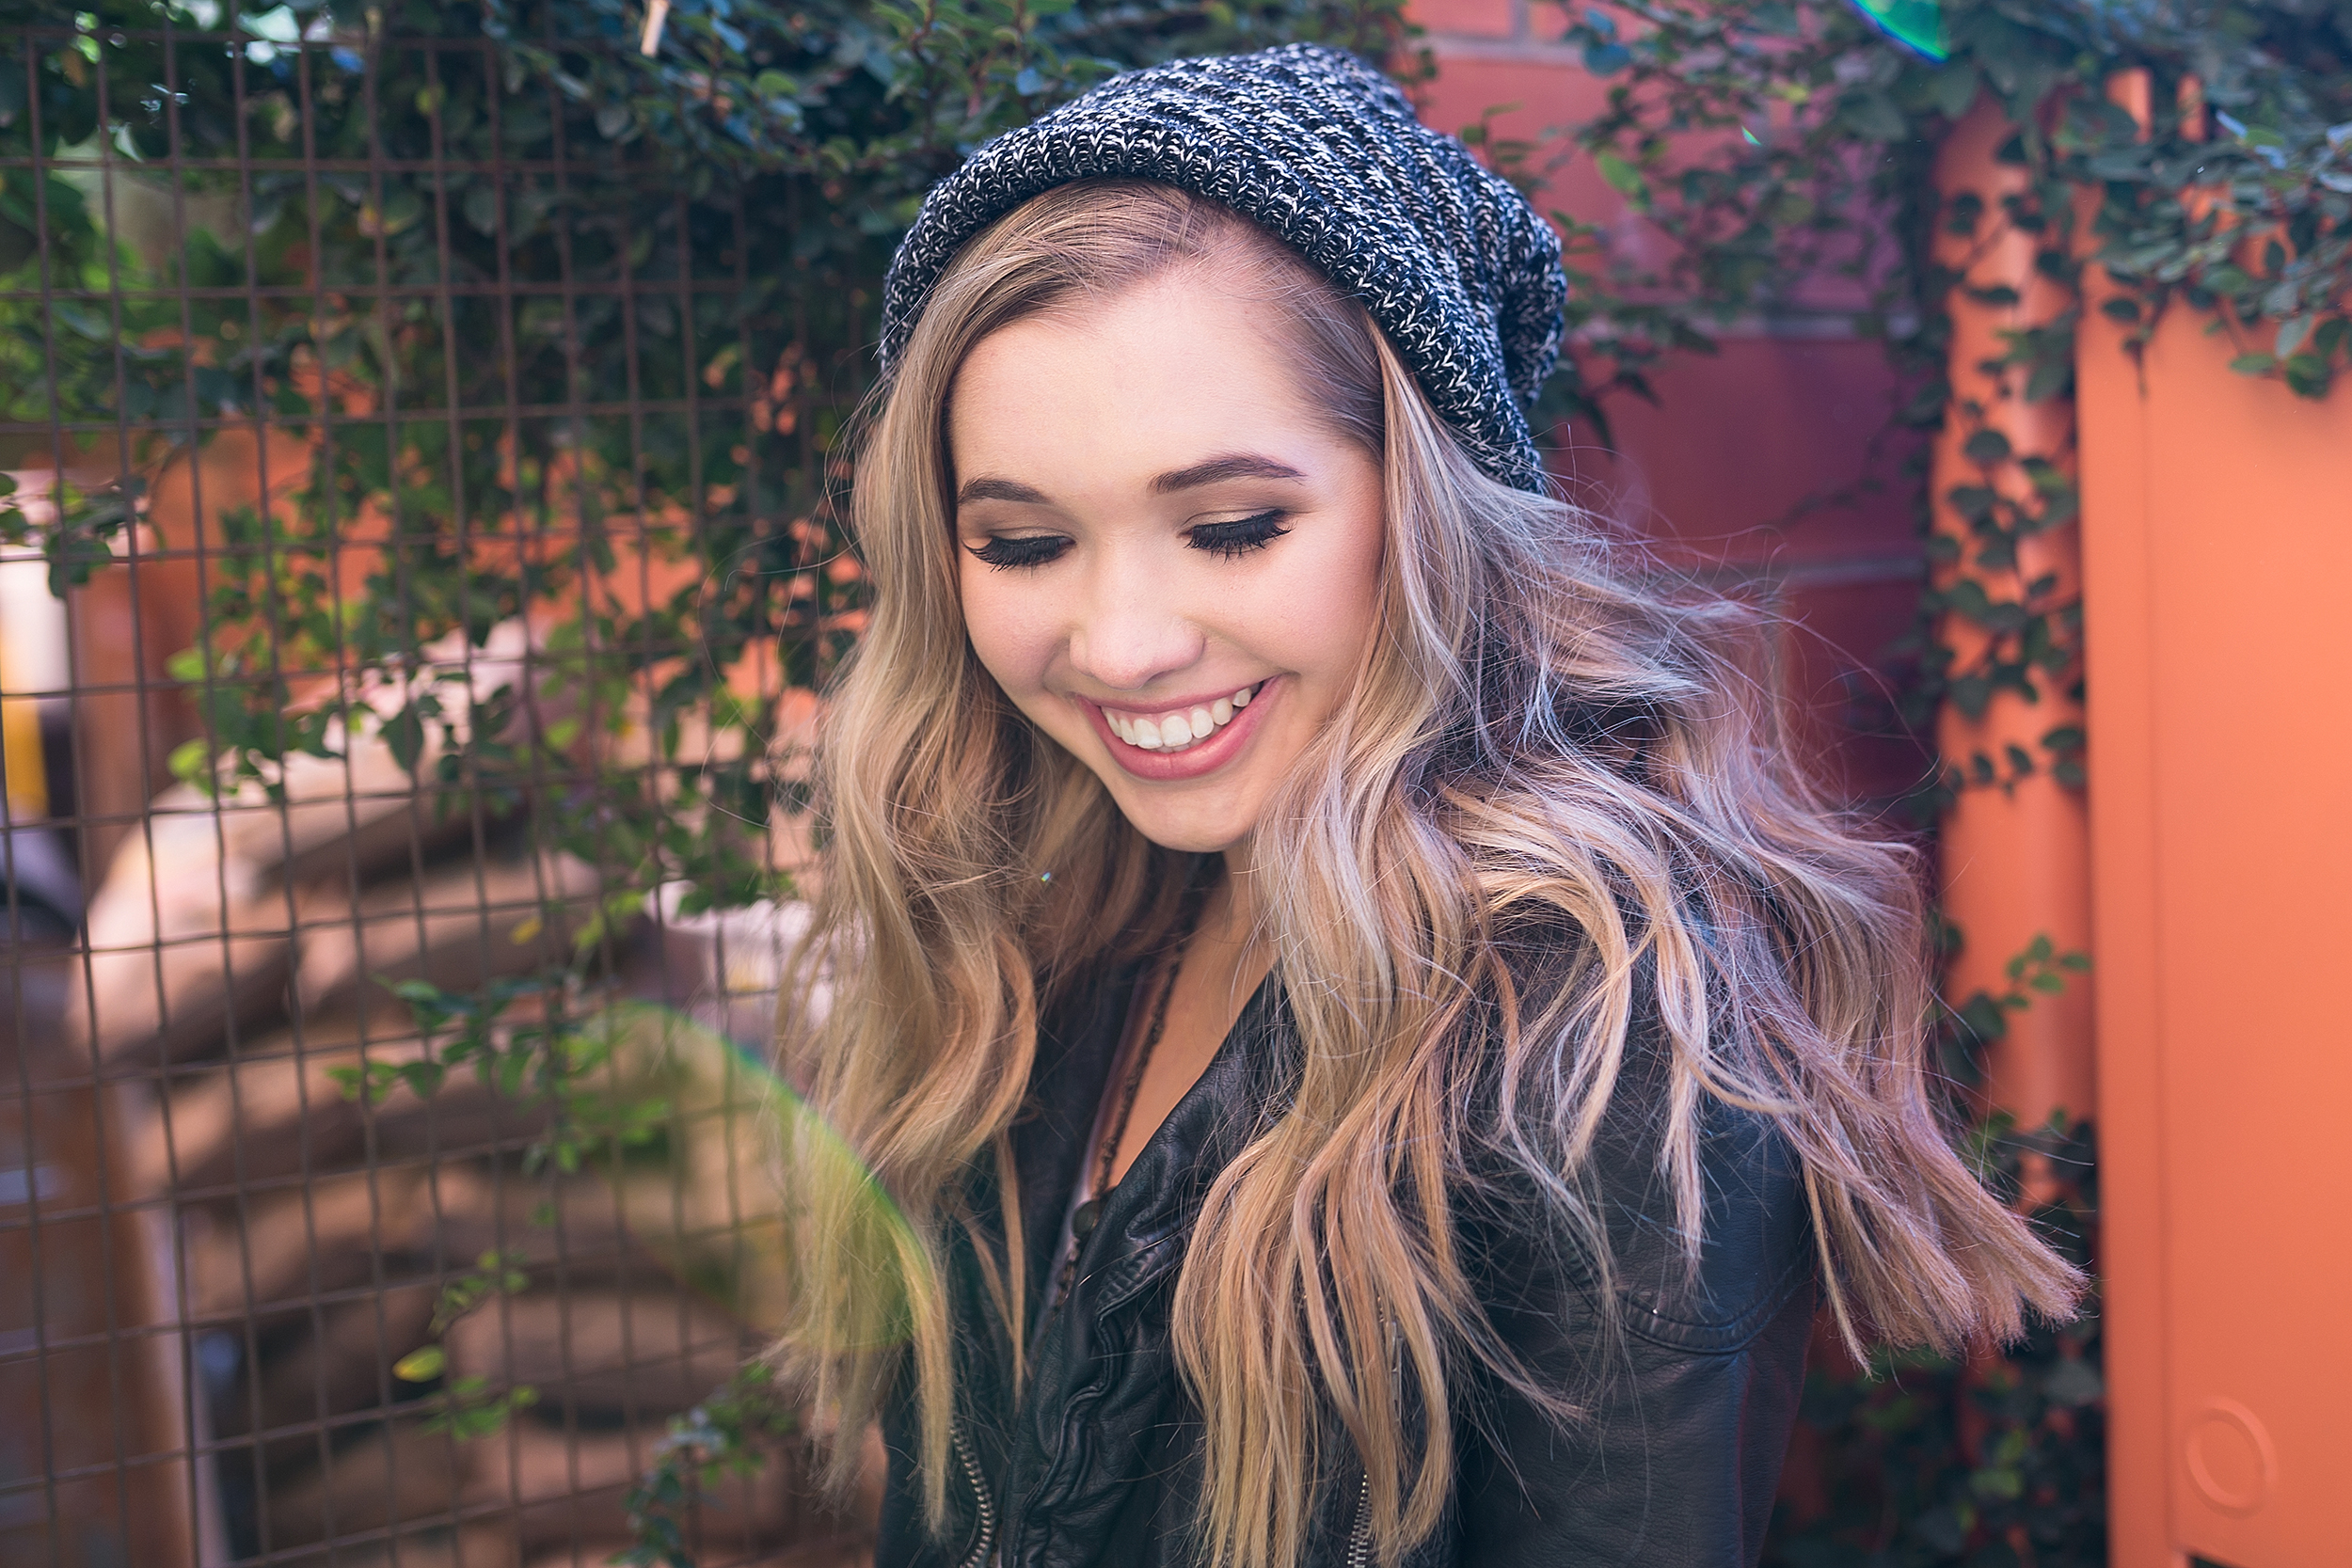 Teen-girl-black-jacket-beanie-hat.jpg